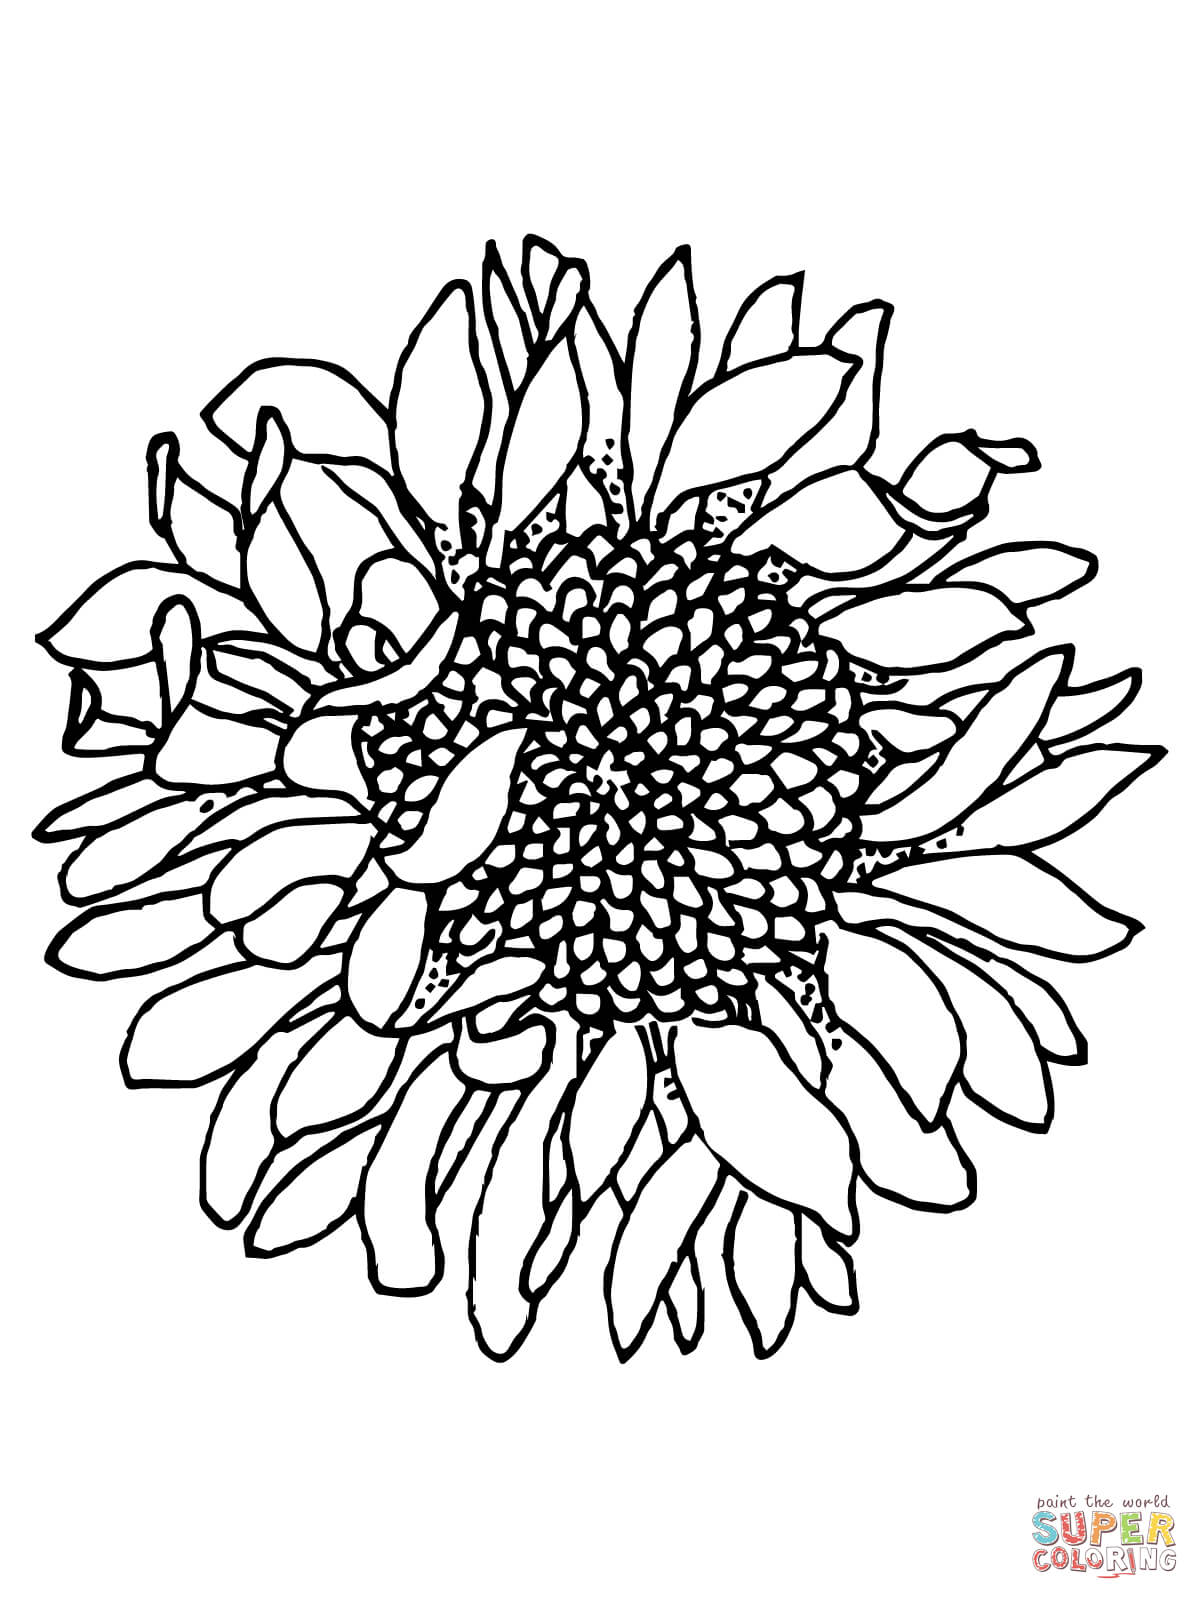 coloring pictures of sunflowers free printable sunflower coloring pages for kids sunflowers coloring pictures of